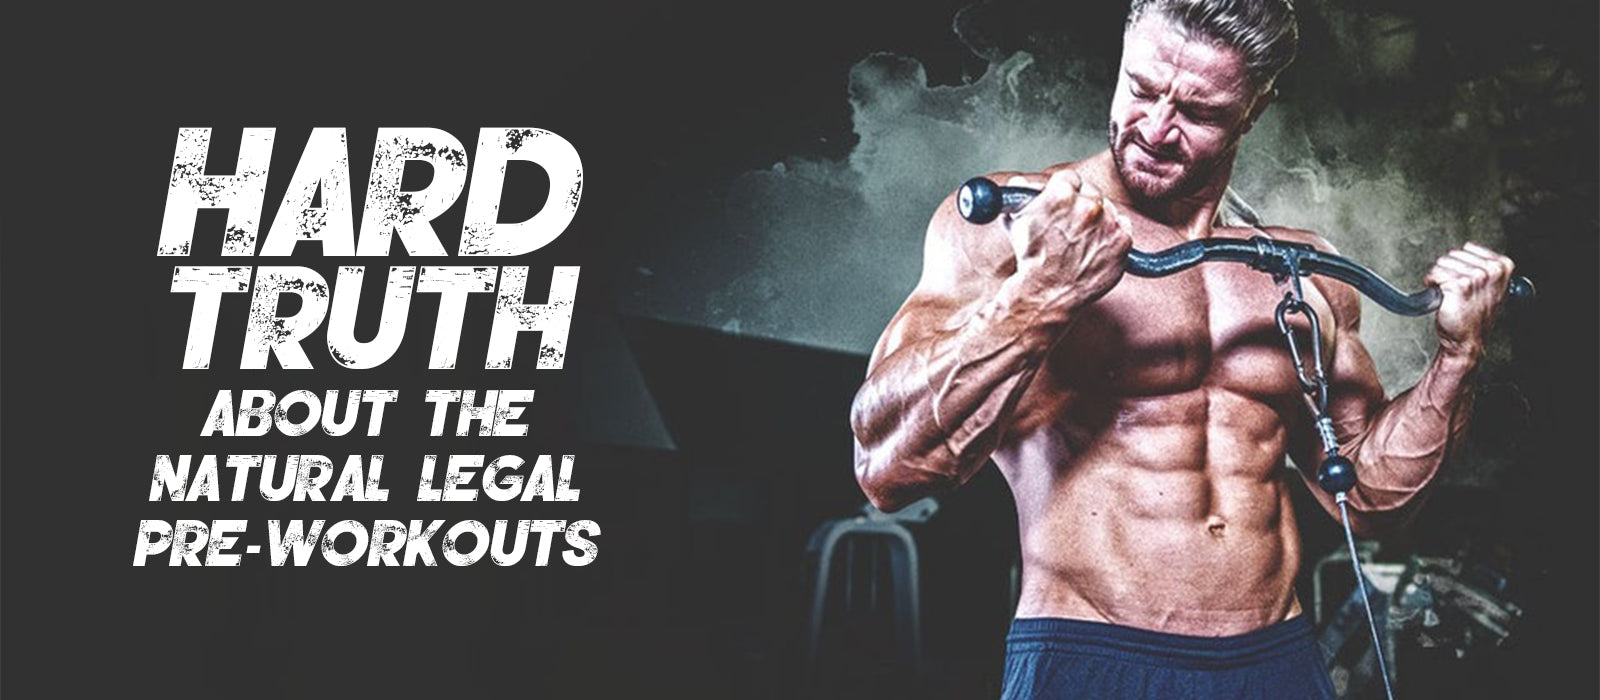 Hard Truth About The Natural Legal Pre-Workouts